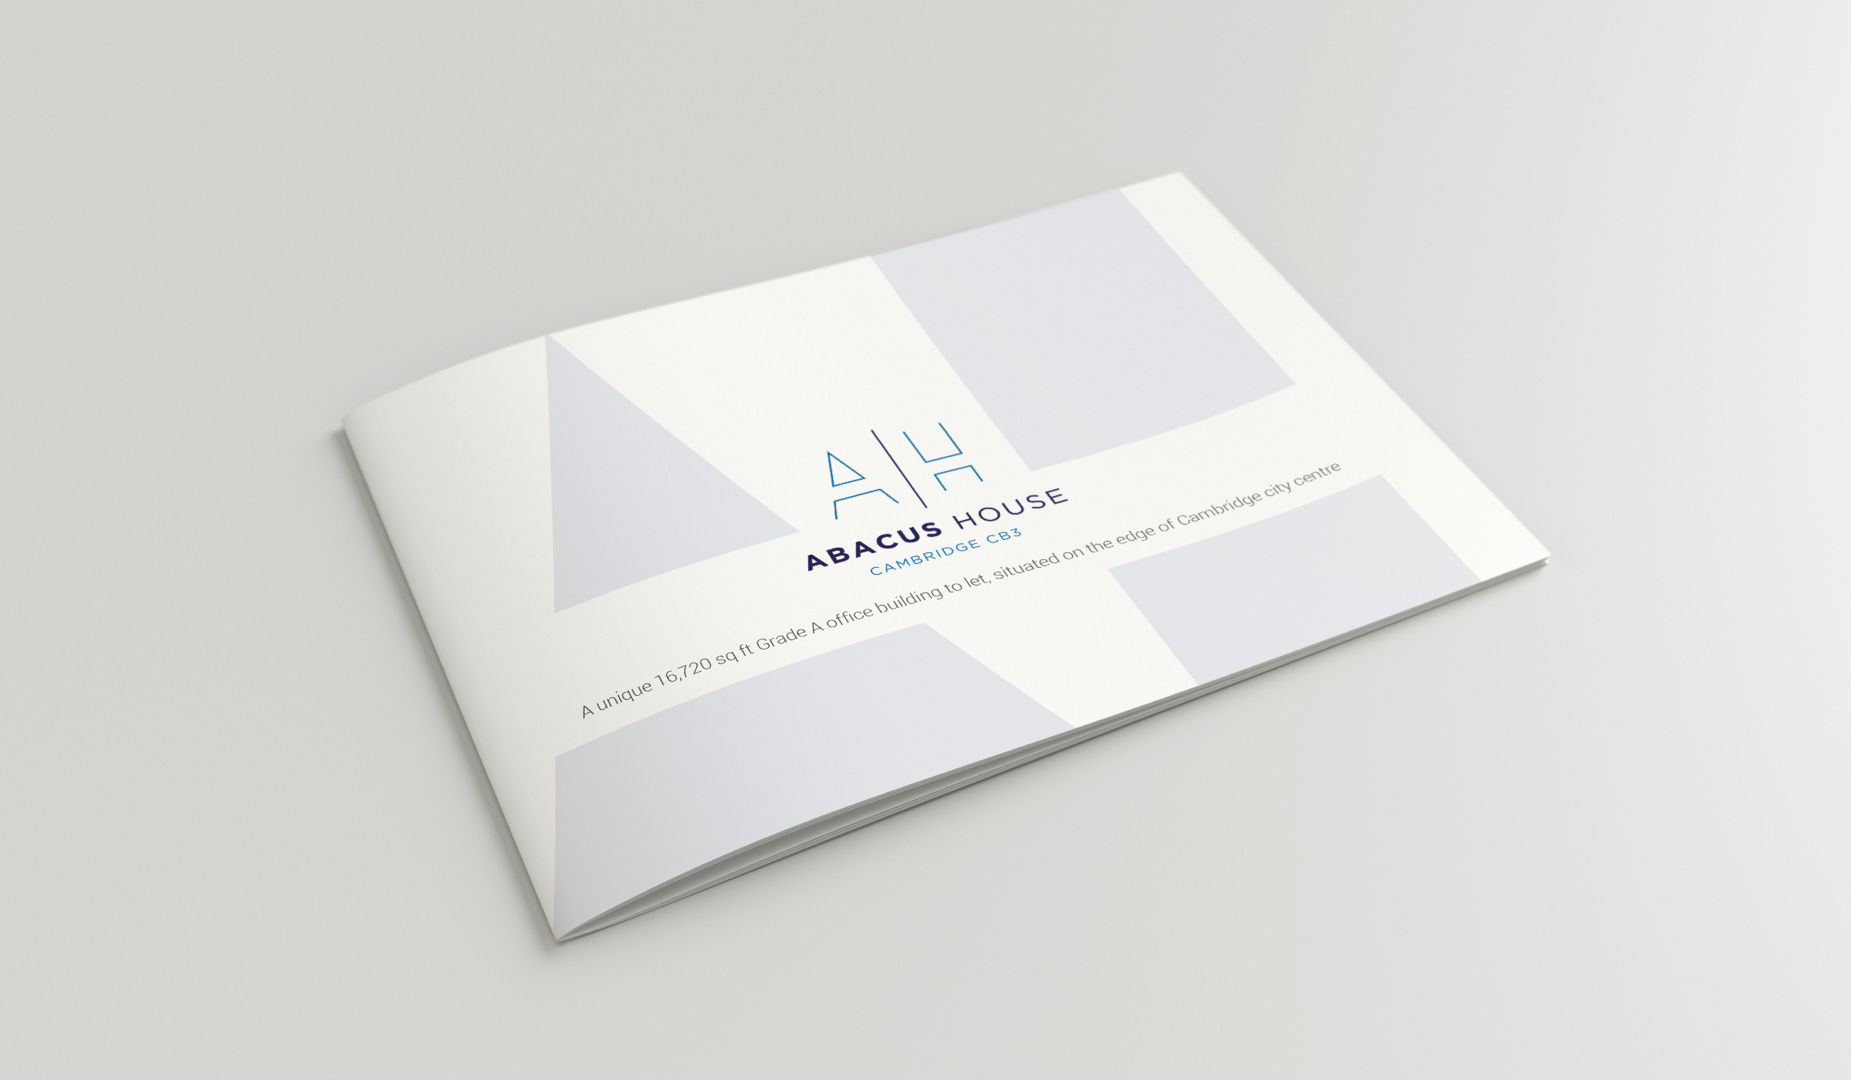 Abacus House, Cambridge, Commercial Property Branding example